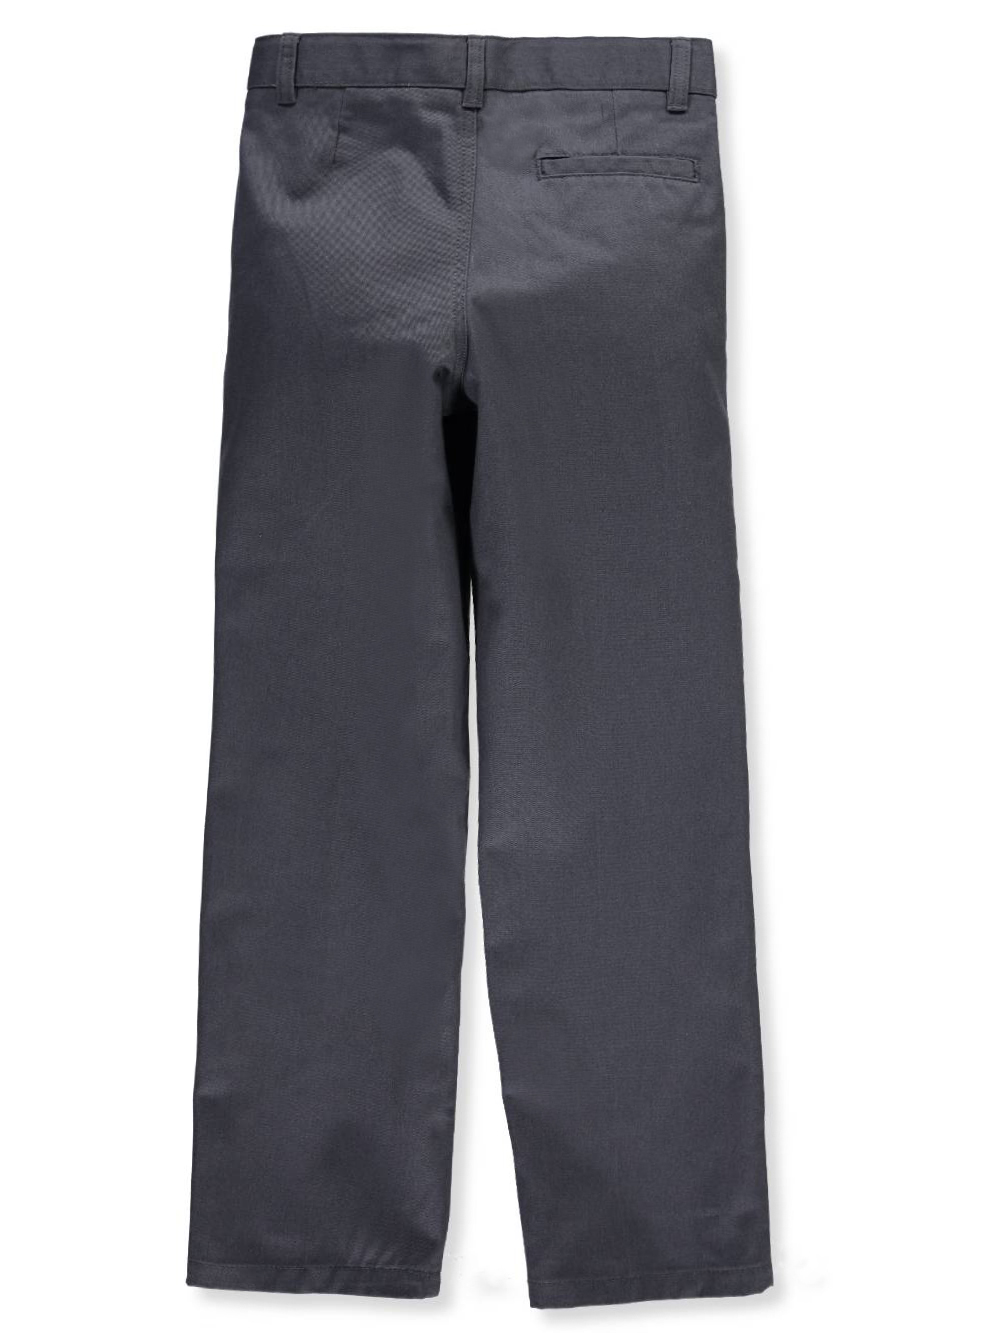 Sizes 8-20 French Toast Big Boys/' Pleated Wrinkle No More Double Knee Pants